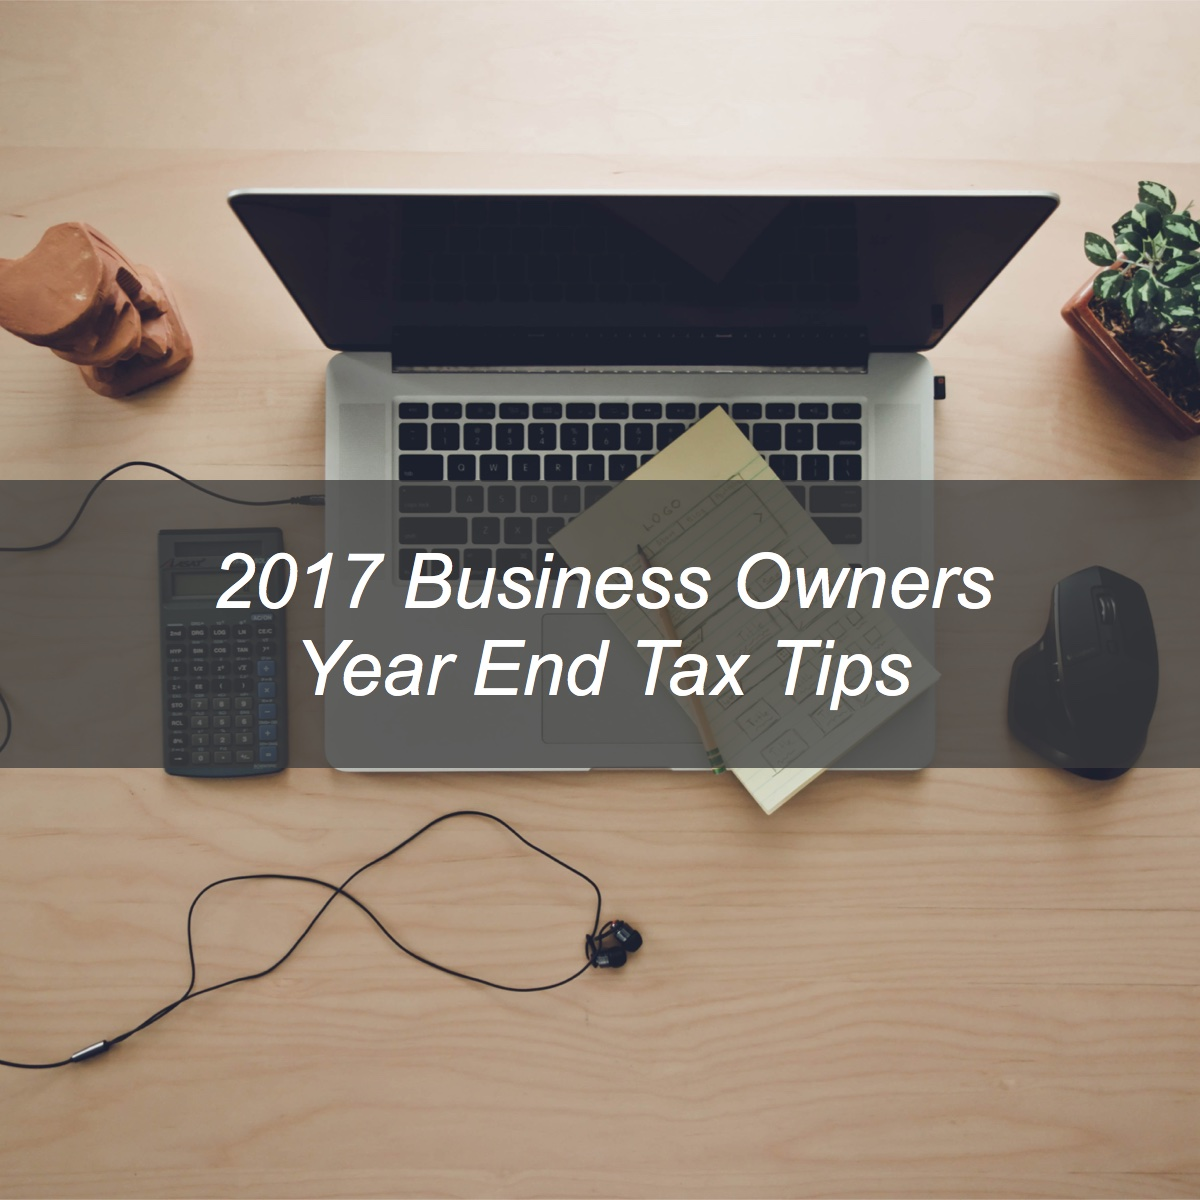 5 Small Business Tax Planning Tips